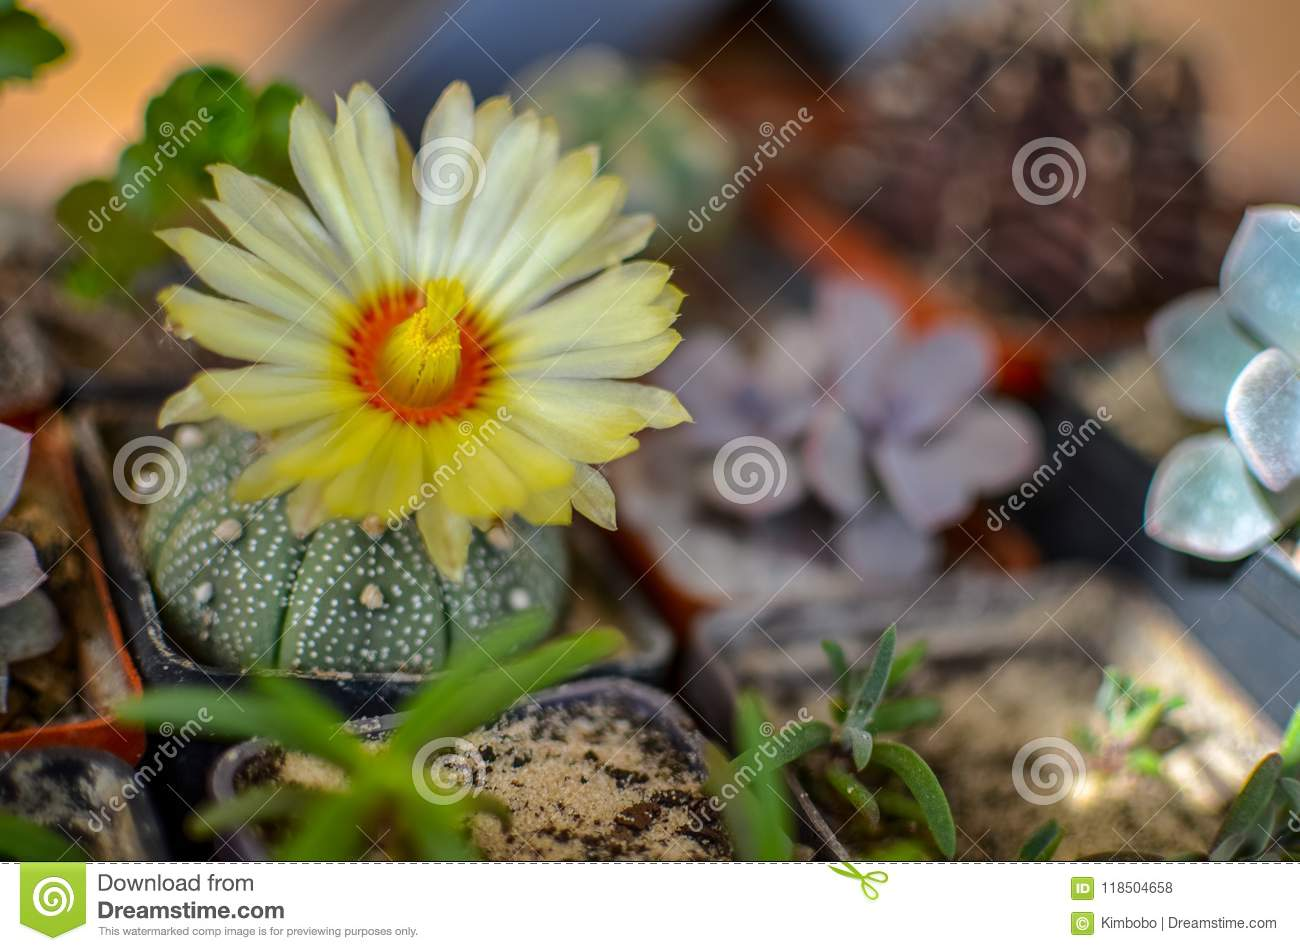 Astrophytum Asterias Cactus With Yellow Flower Stock Photo Image